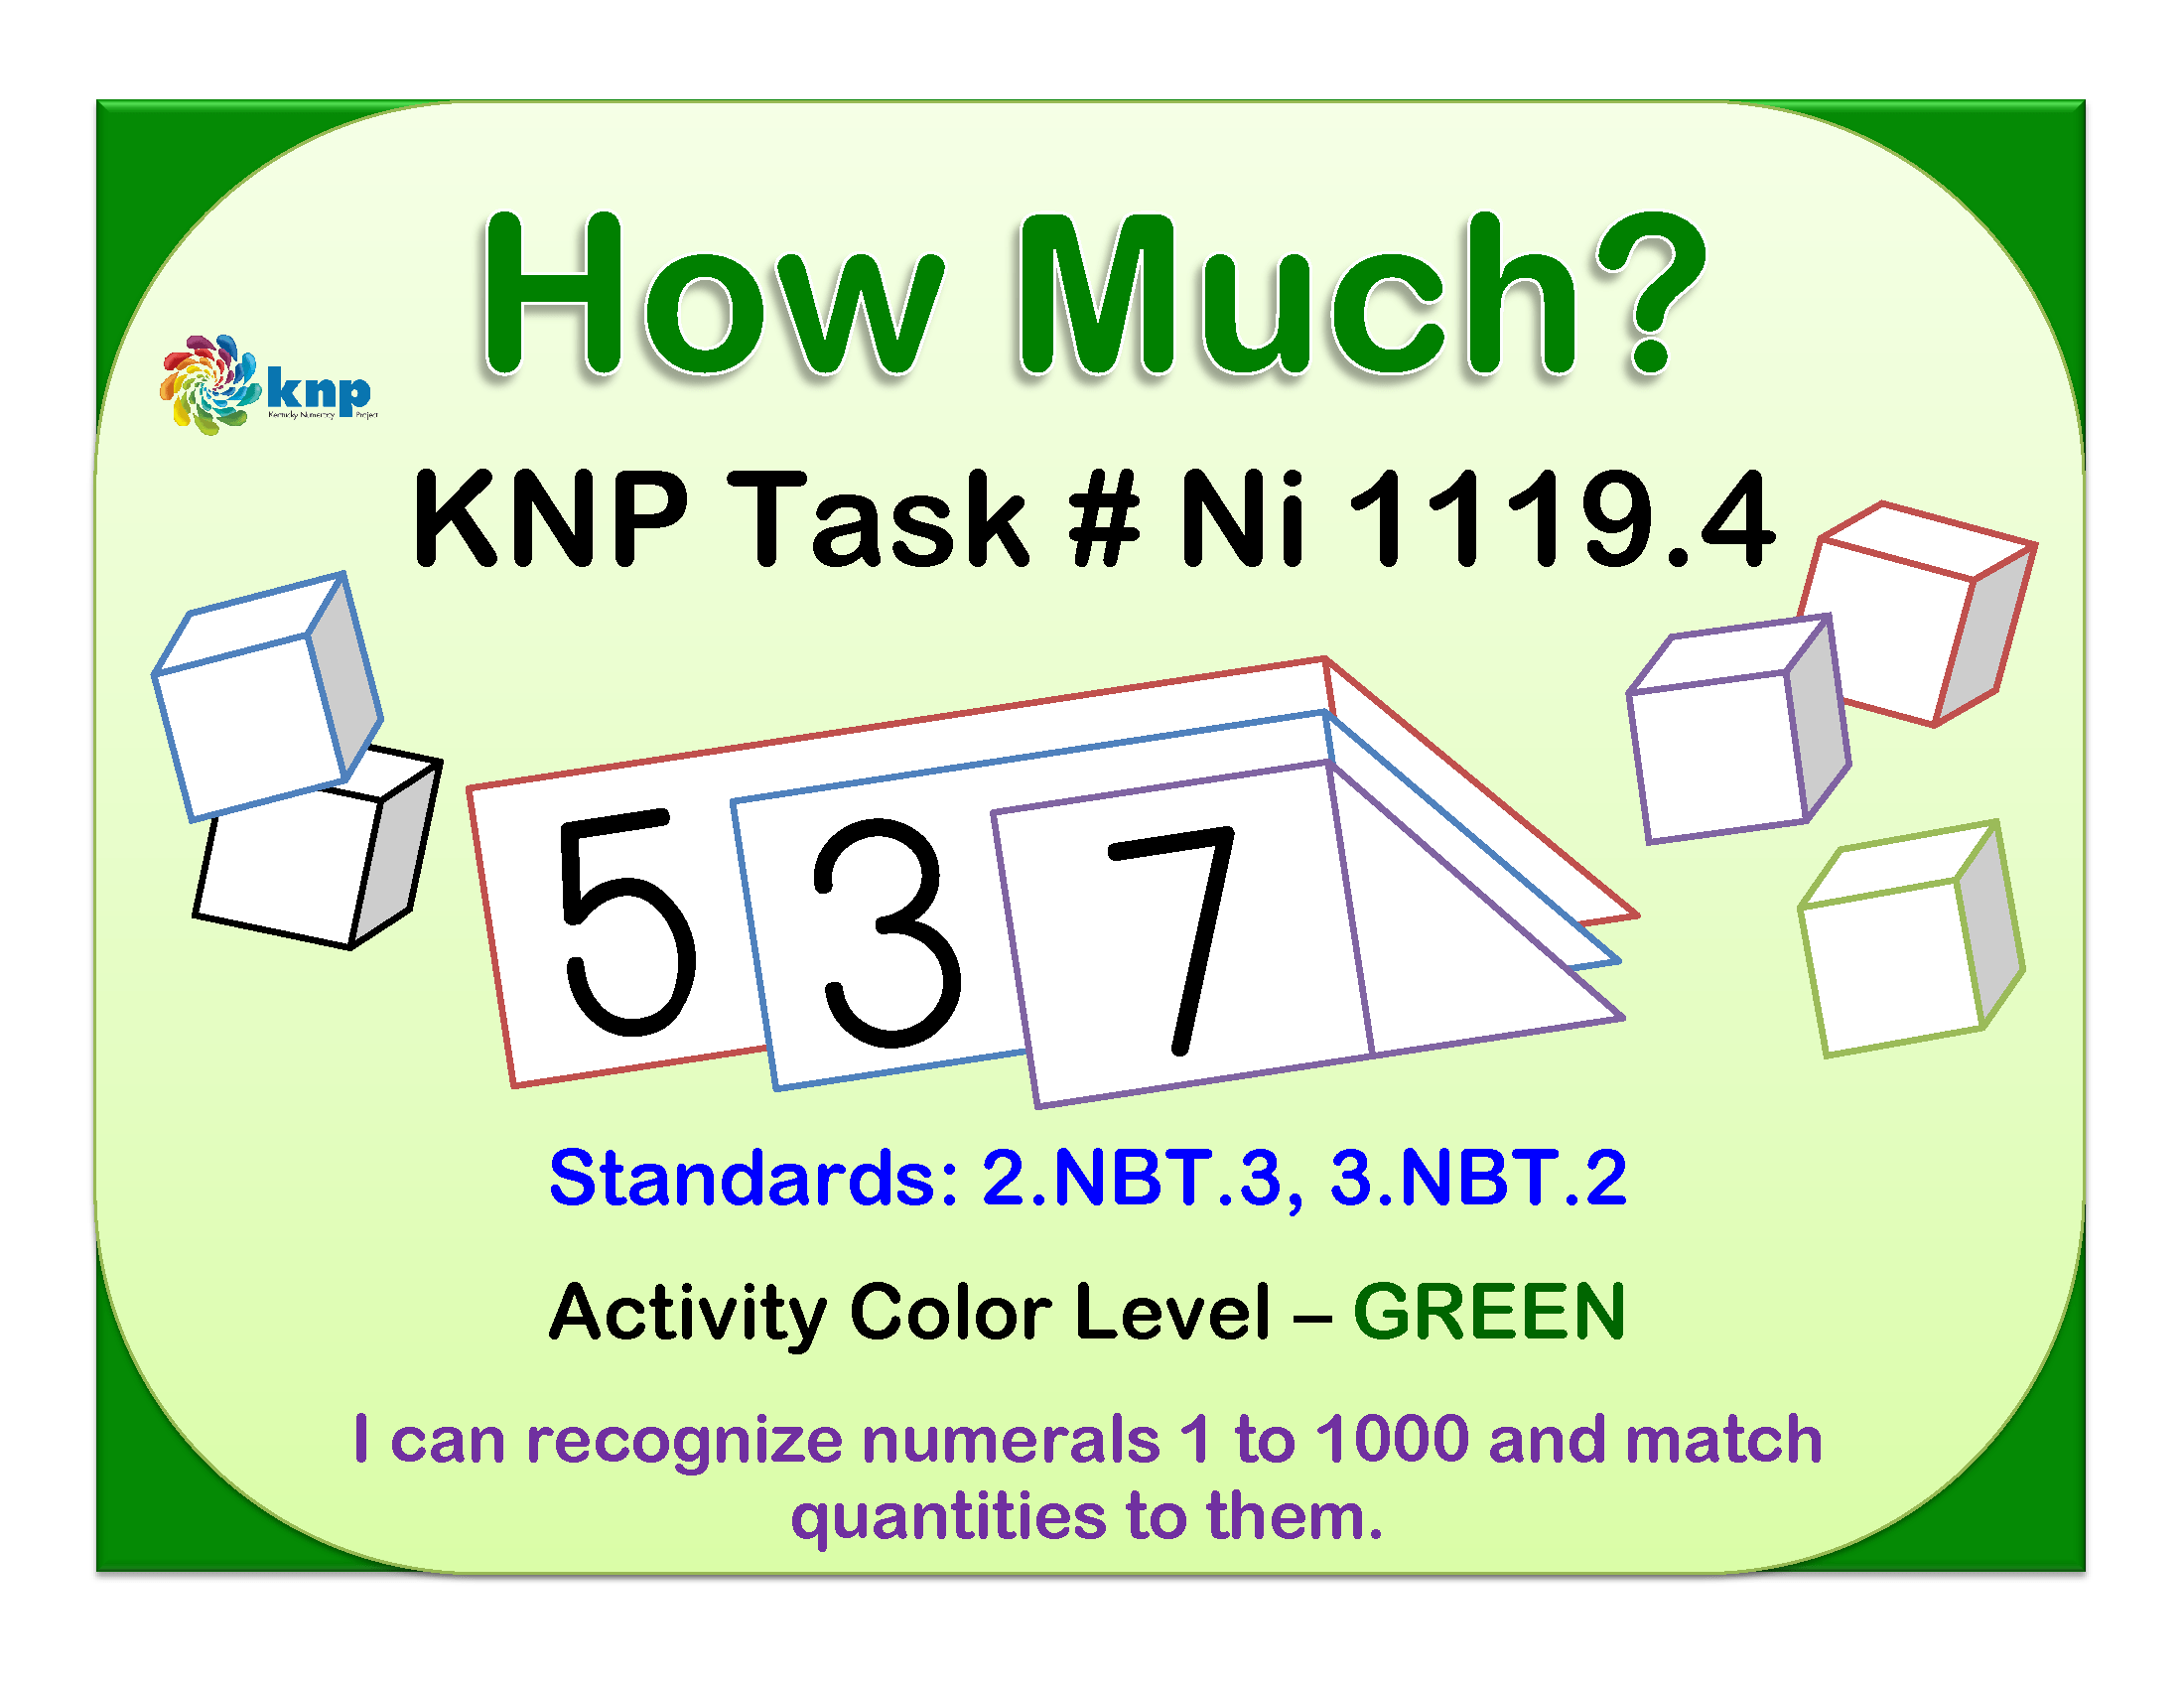 Knp Kentucky Numeracy Project